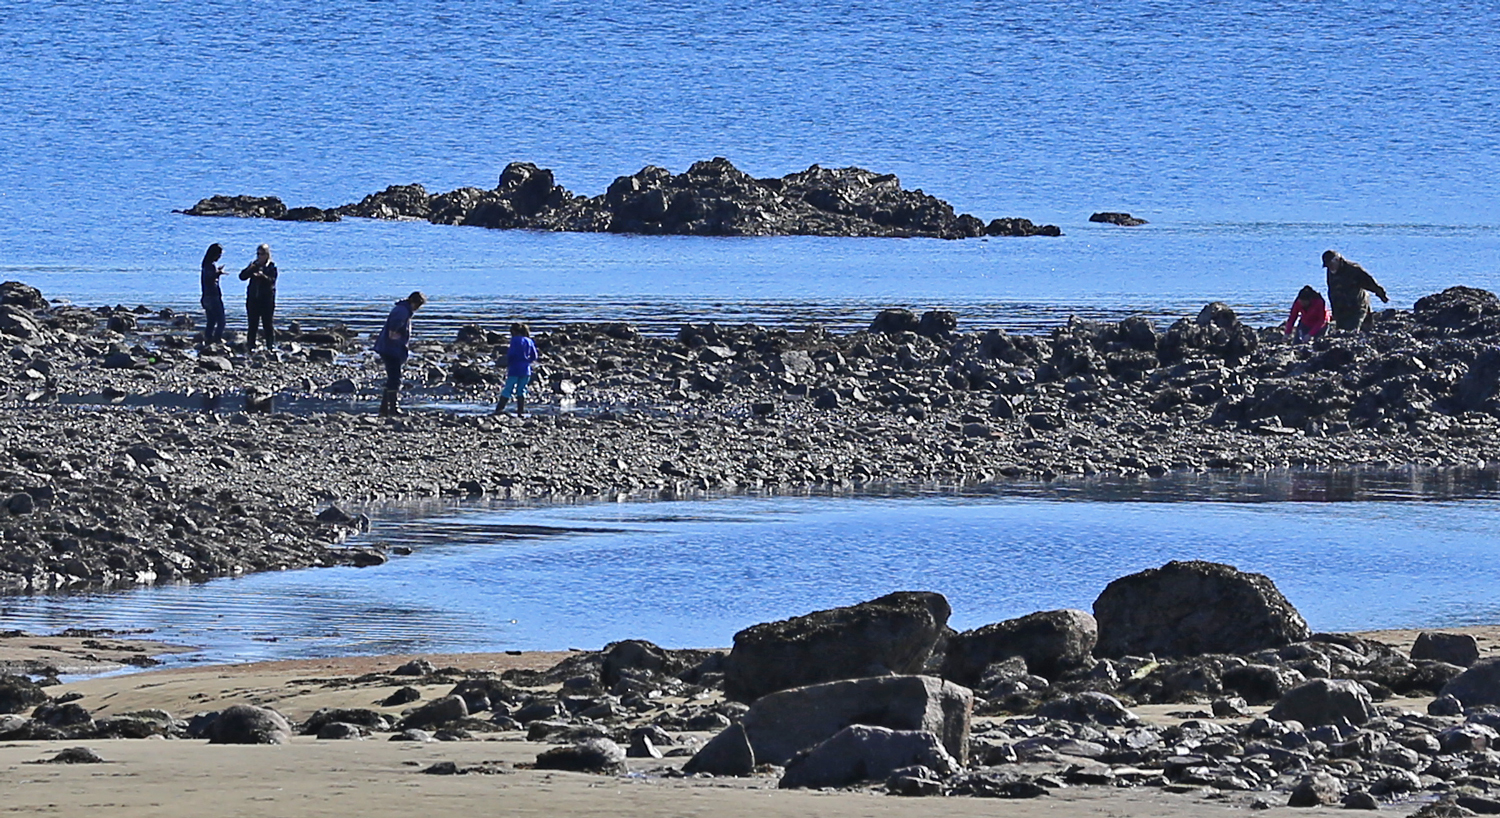 There are stretches of nice, sandy beach along the Sandy Beach Road, but tidepools can make the rocky beaches far more interesting.